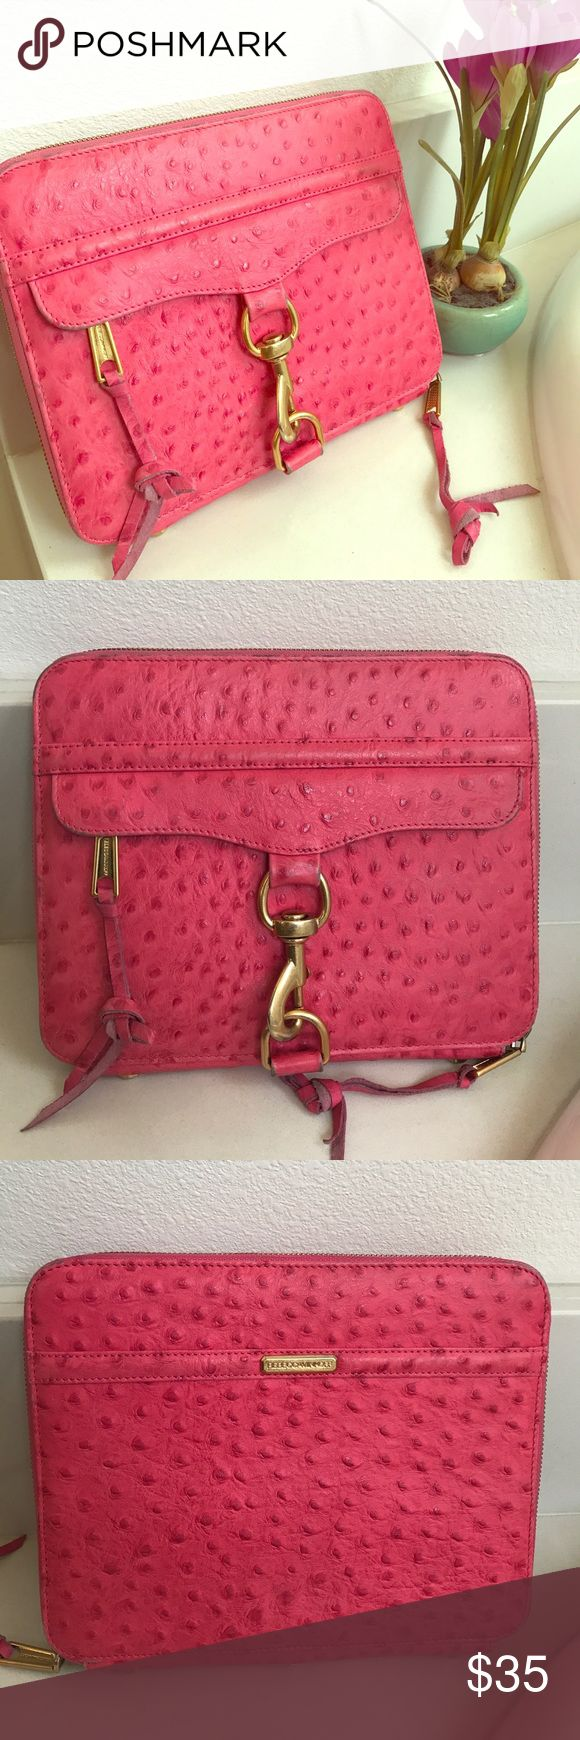 Rebecca Minkoff Ostrich Hot Pink IPad Tablet Case Rebecca Minkoff Ostrich Hot Pink IPad Case. Super cute to use for work or to keep your iPad safe. Used condition, visible wear to case and leather interior Rebecca Minkoff Accessories Tablet Cases